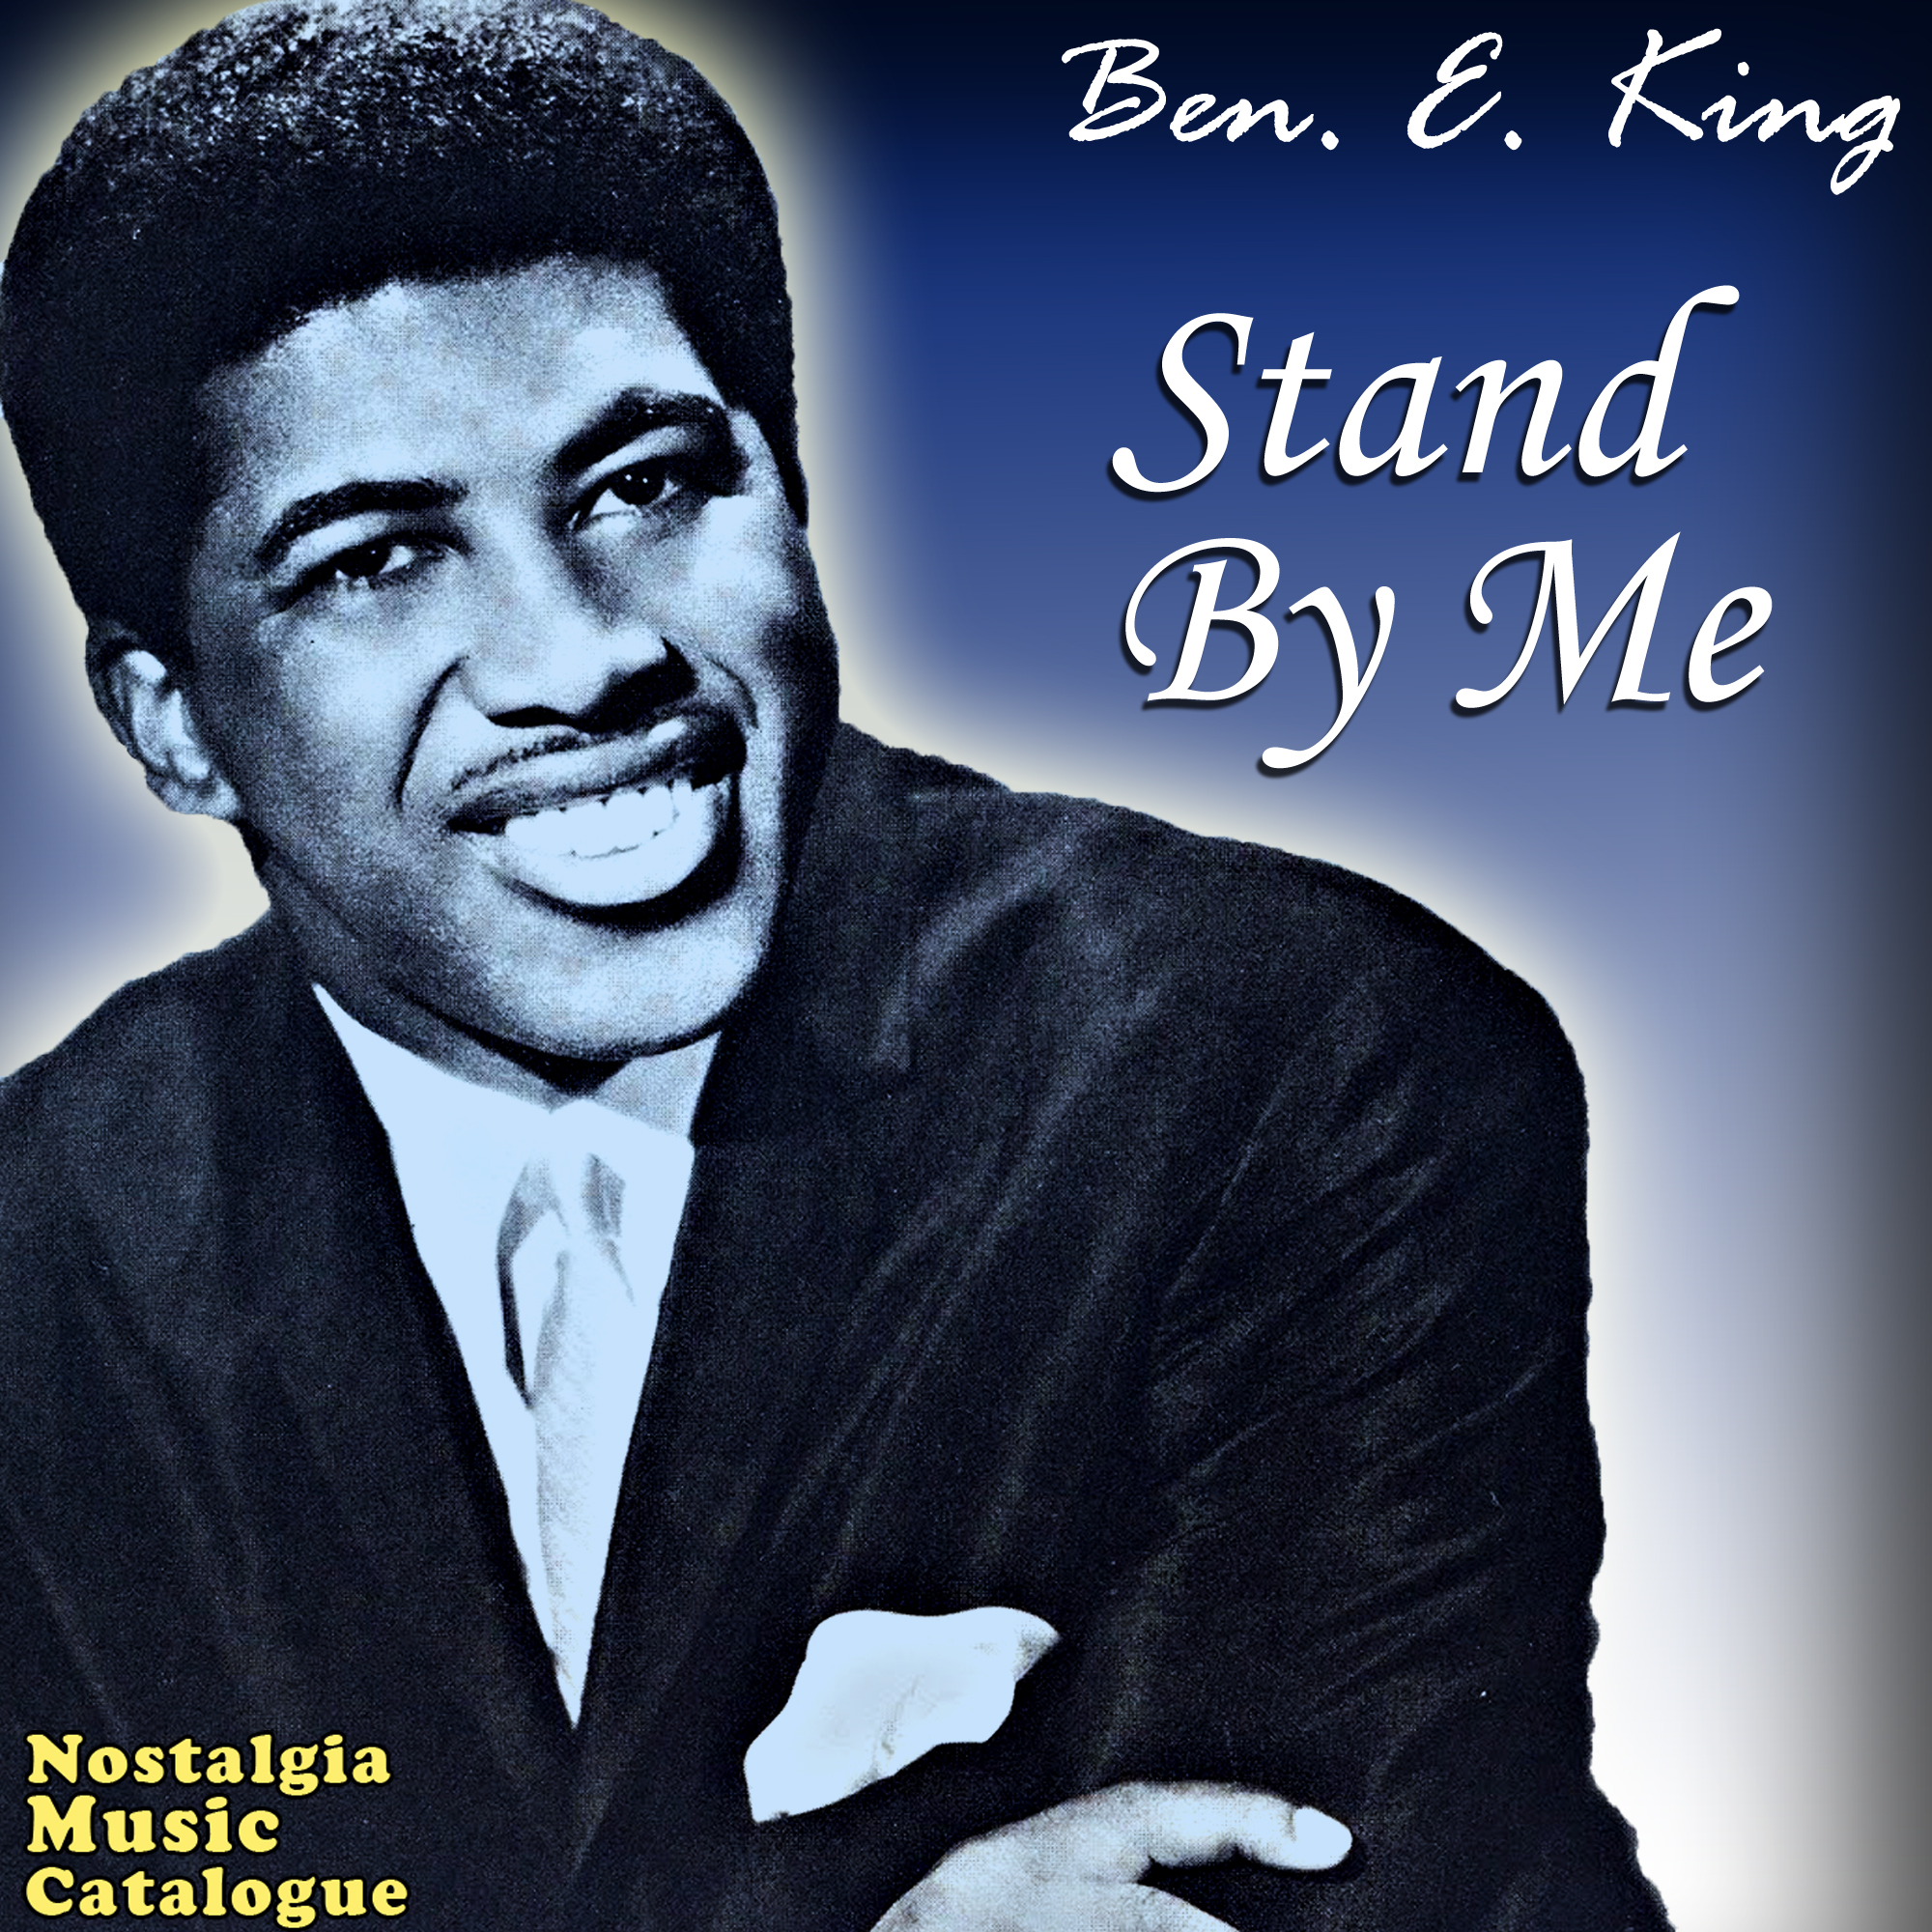 Ben E. King ��� Stand By Me - Nostalgia Music CatalogueNostalgia.